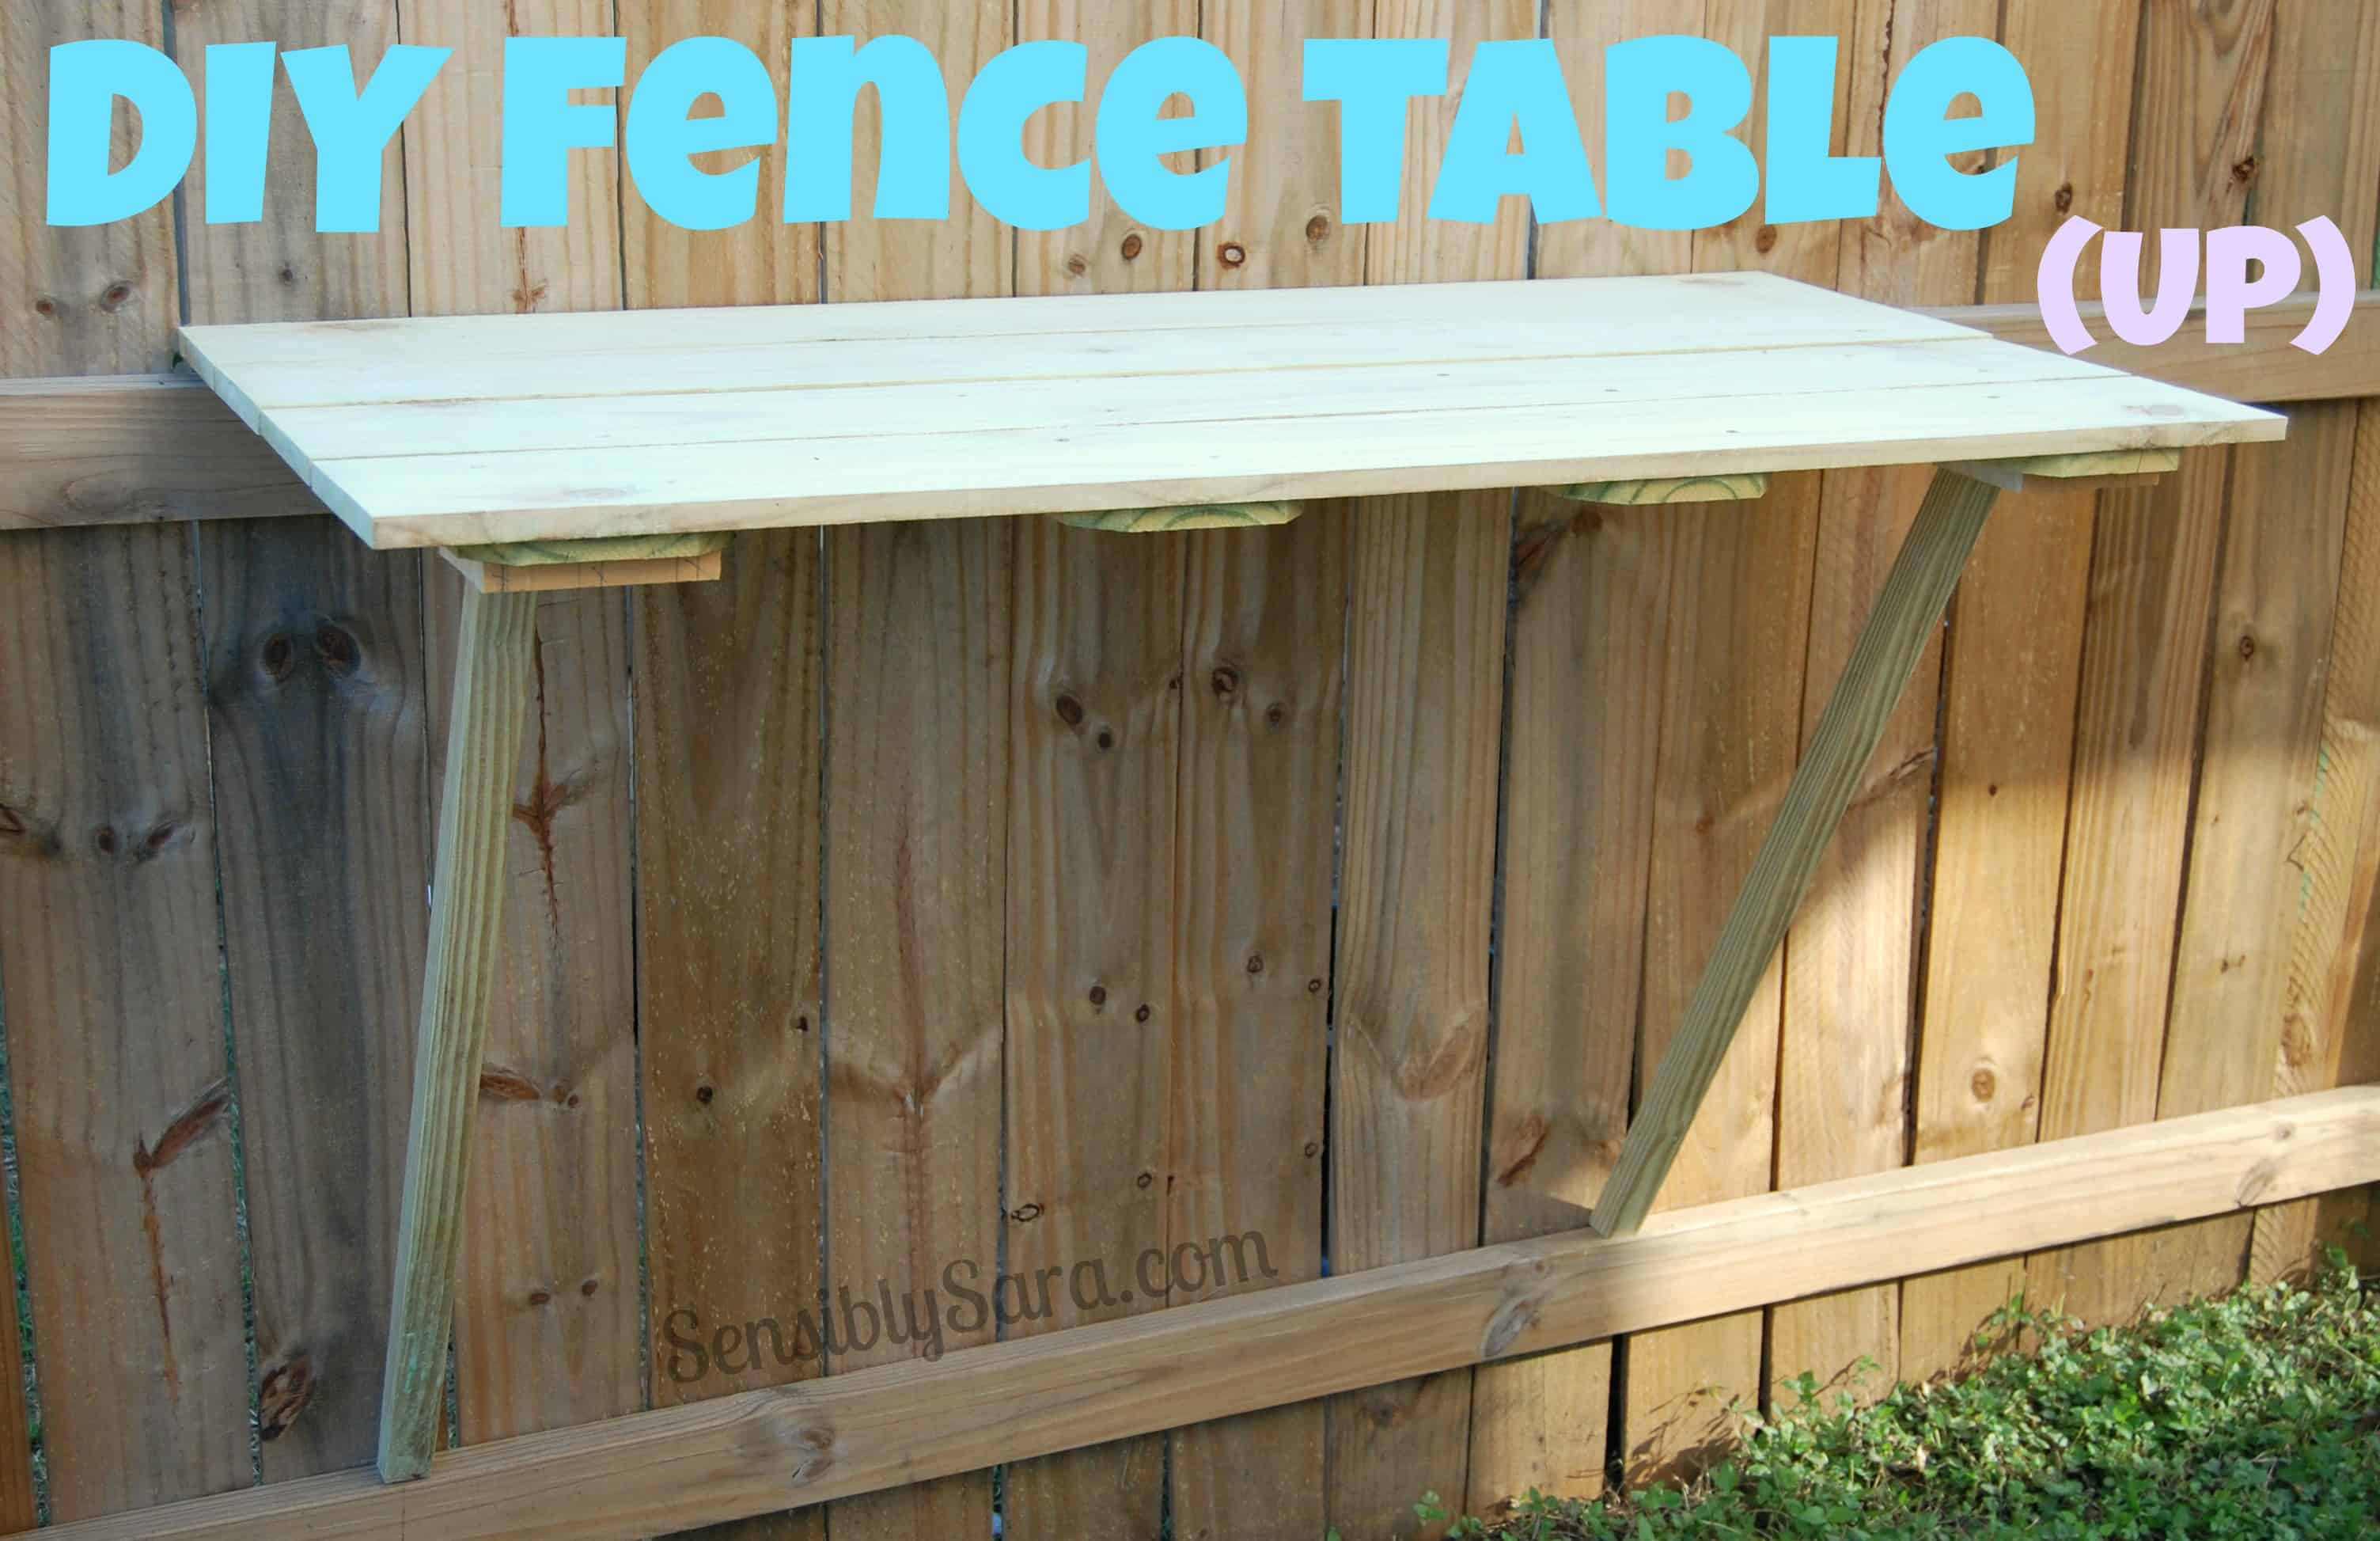 Table built into a fence in the up position